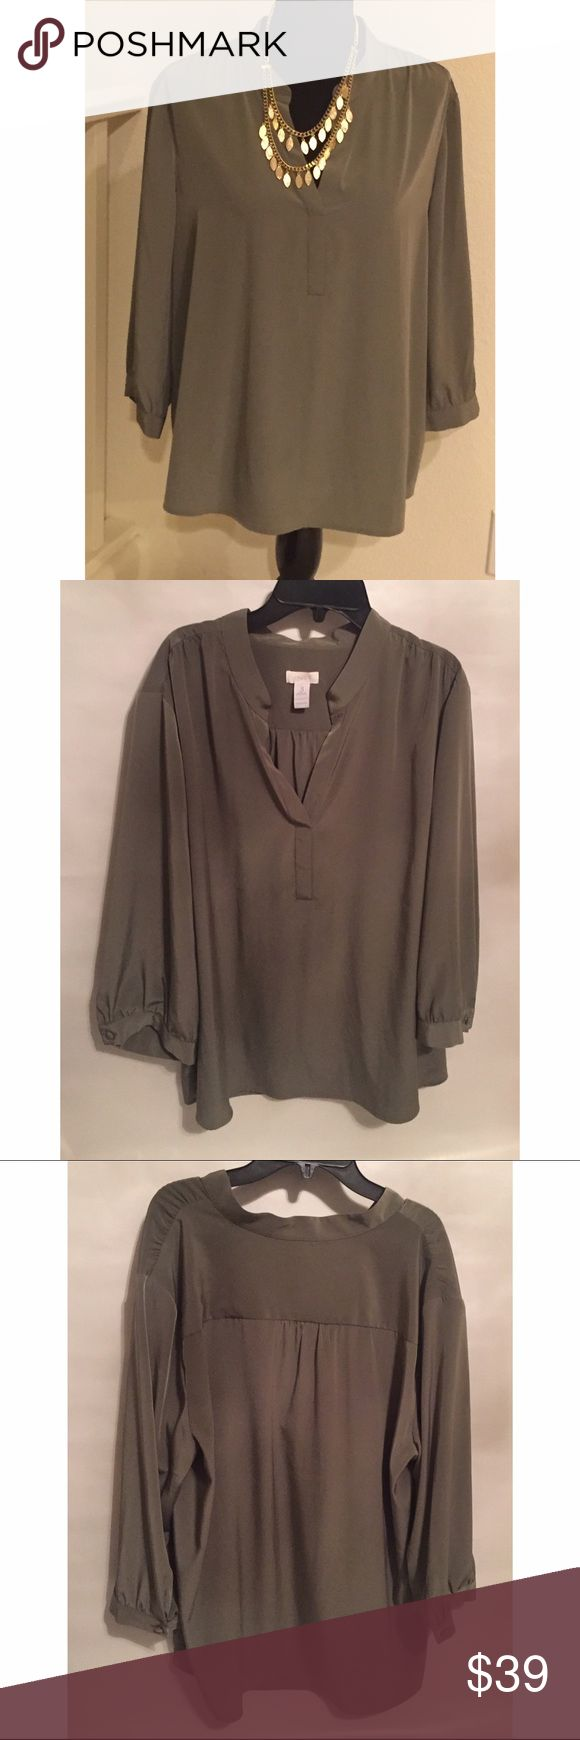 Chico dressy top Chico dressy top. Size 3 (XL/16) Chico's Tops Blouses